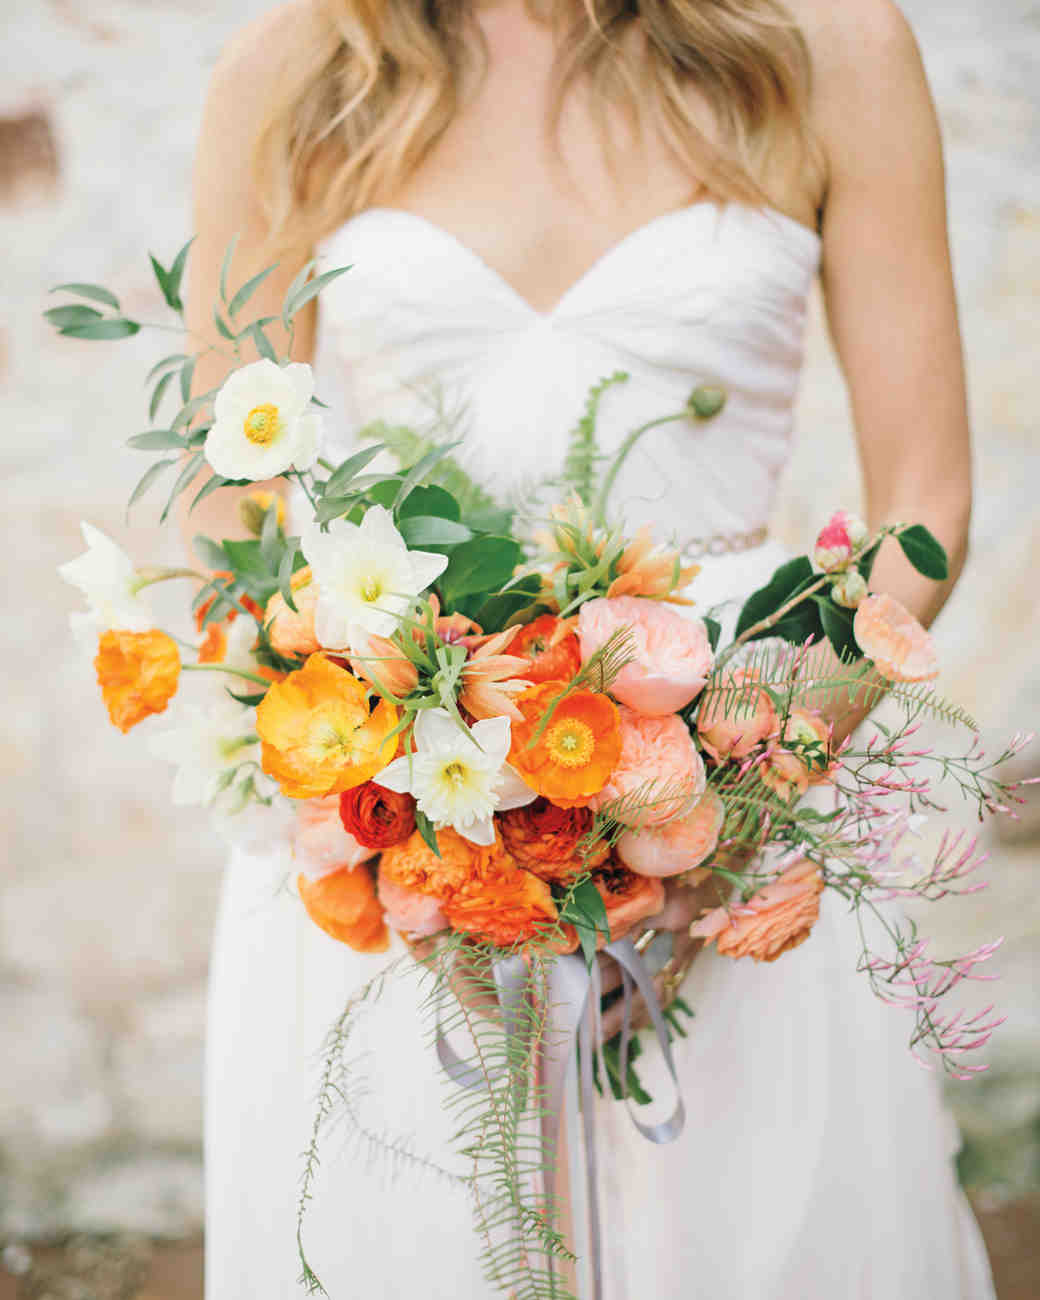 Our Wedding Flowers allow you to concentrate on other aspects of your soundinstruments.ml Prices Guaranteed· Environmentally Friendly· Perfect Wedding Flowers· Unique CenterpiecesSubscriptions: VIP Carnation Club, VIP Flower Club, VIP Rose Club and more.